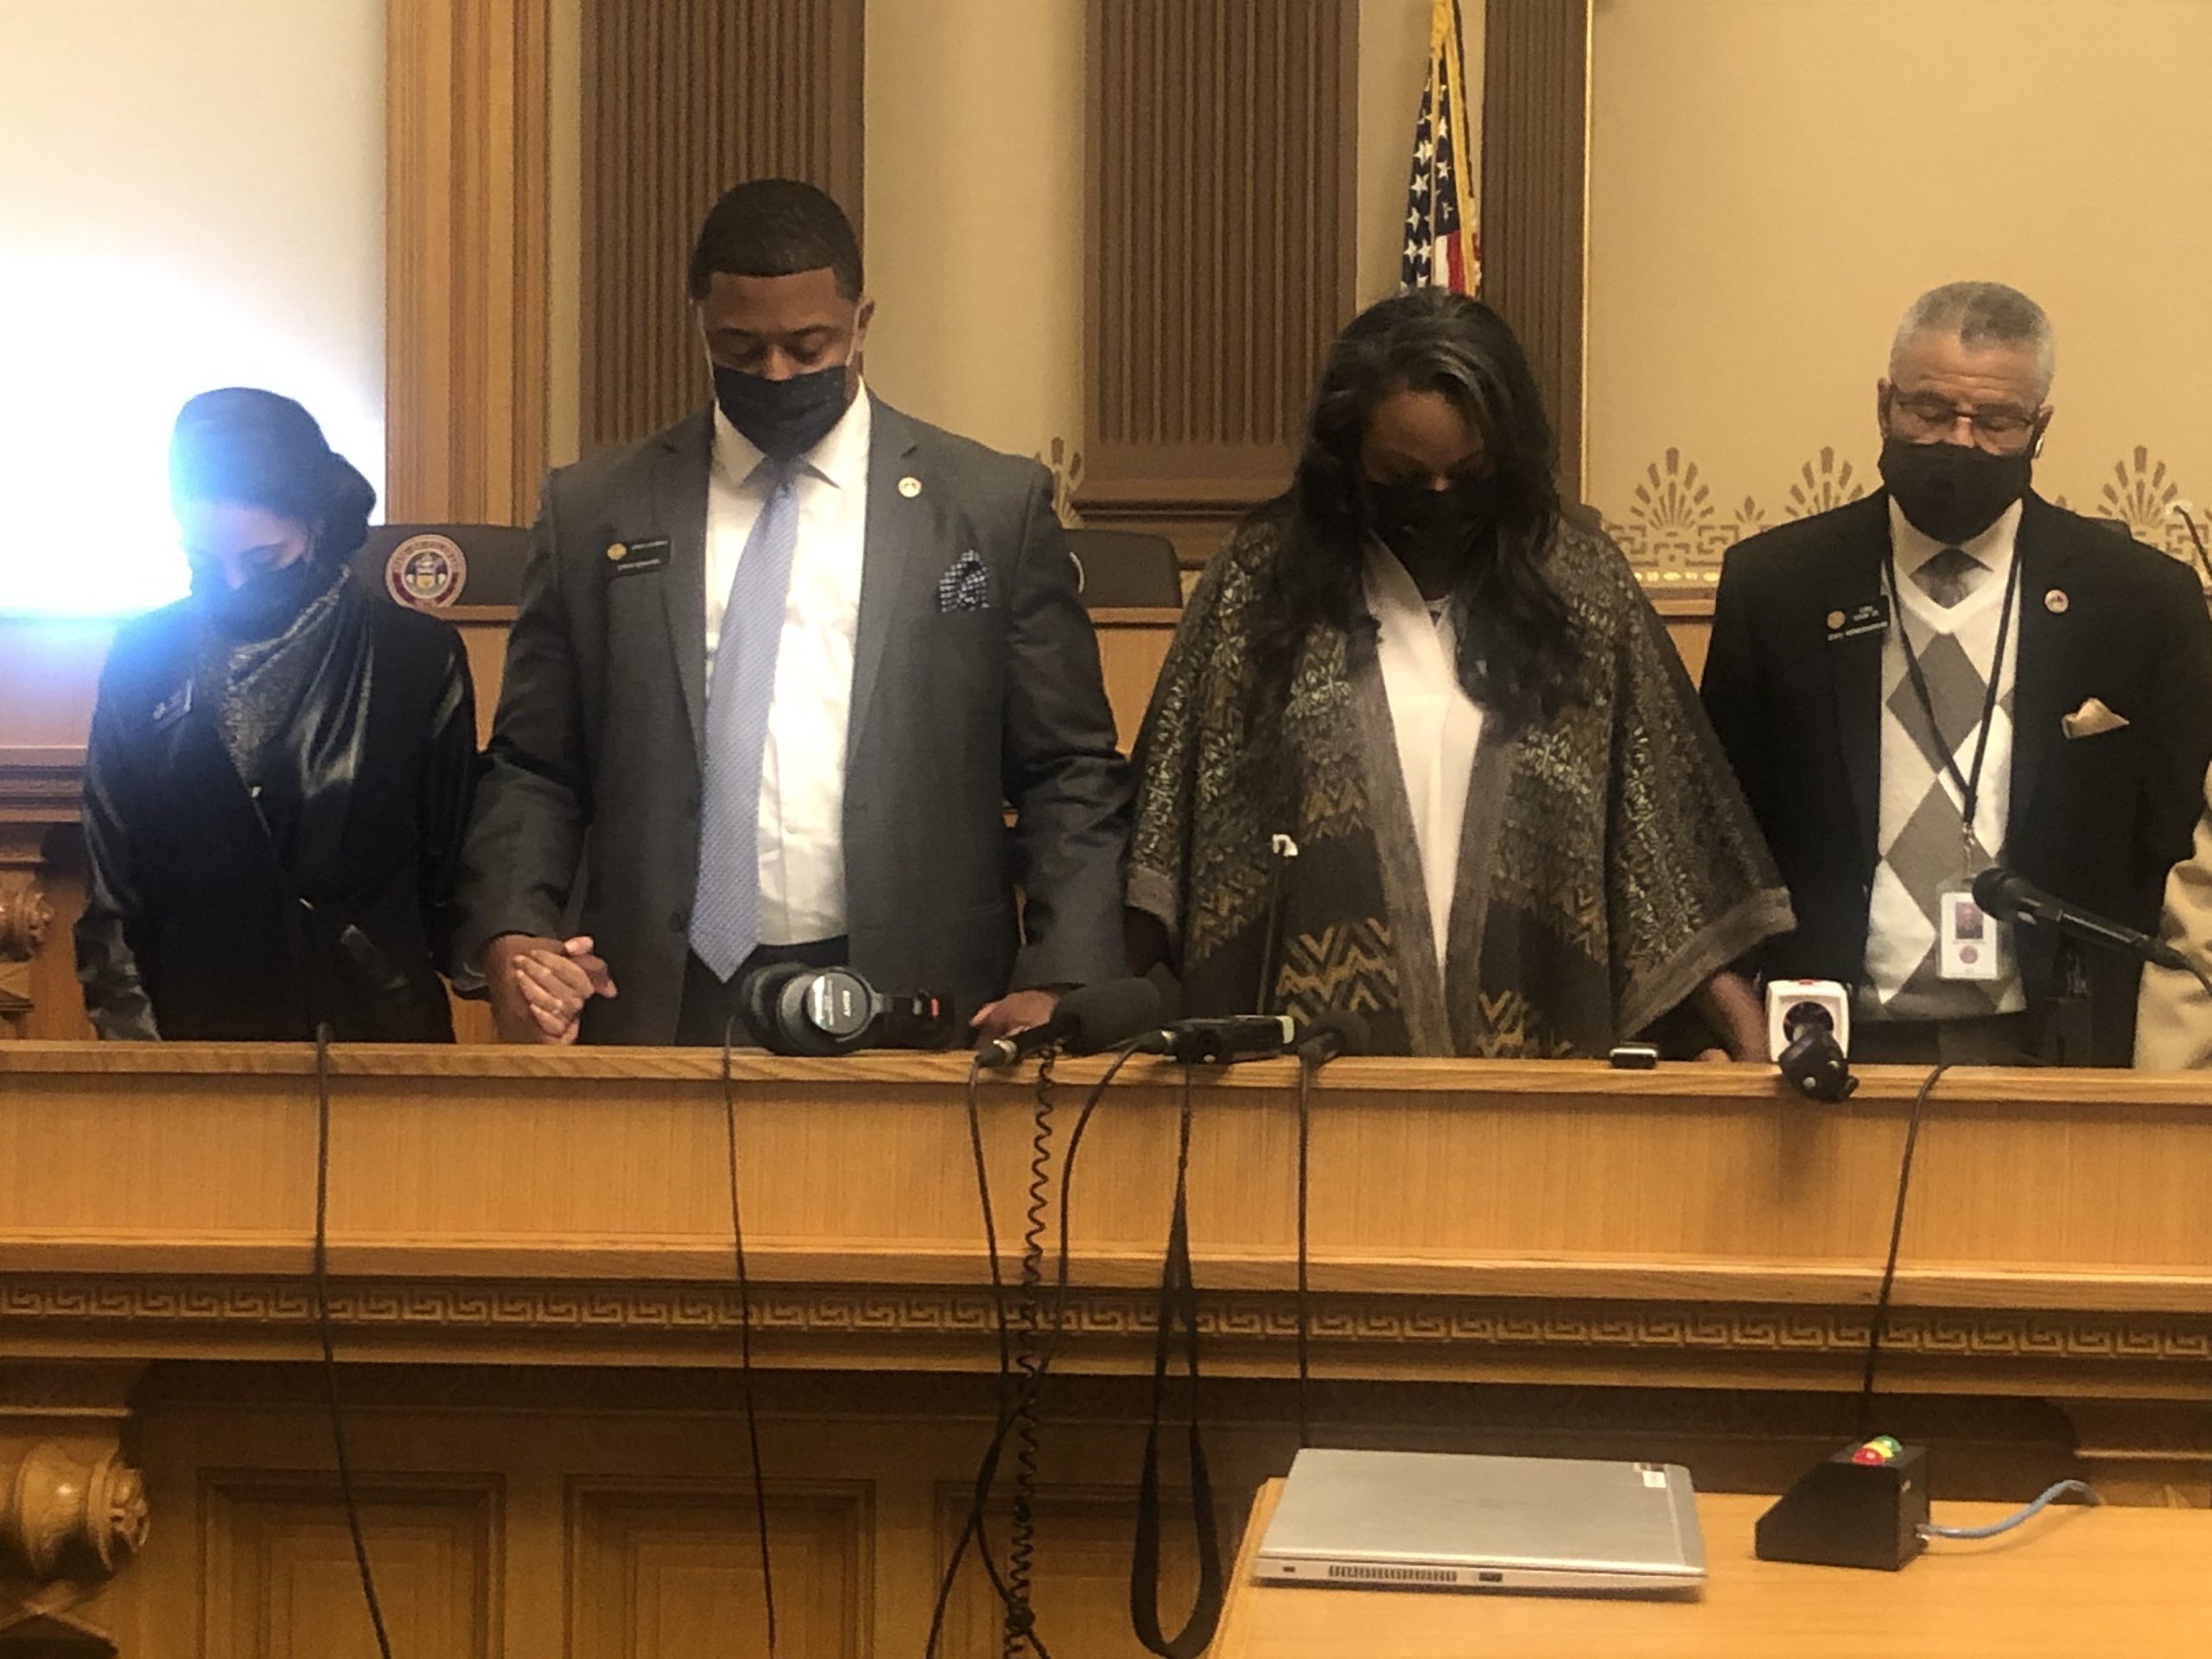 Members of Colorado's Democratic Black Caucus stand in prayer shortly after the Derek Chauvin verdict is announced, April 20, 2021. From left to right: Rep. Iman Jodeh, Sen. James Coleman, Rep. Leslie Herod, and Rep. Tony Exum Sr.